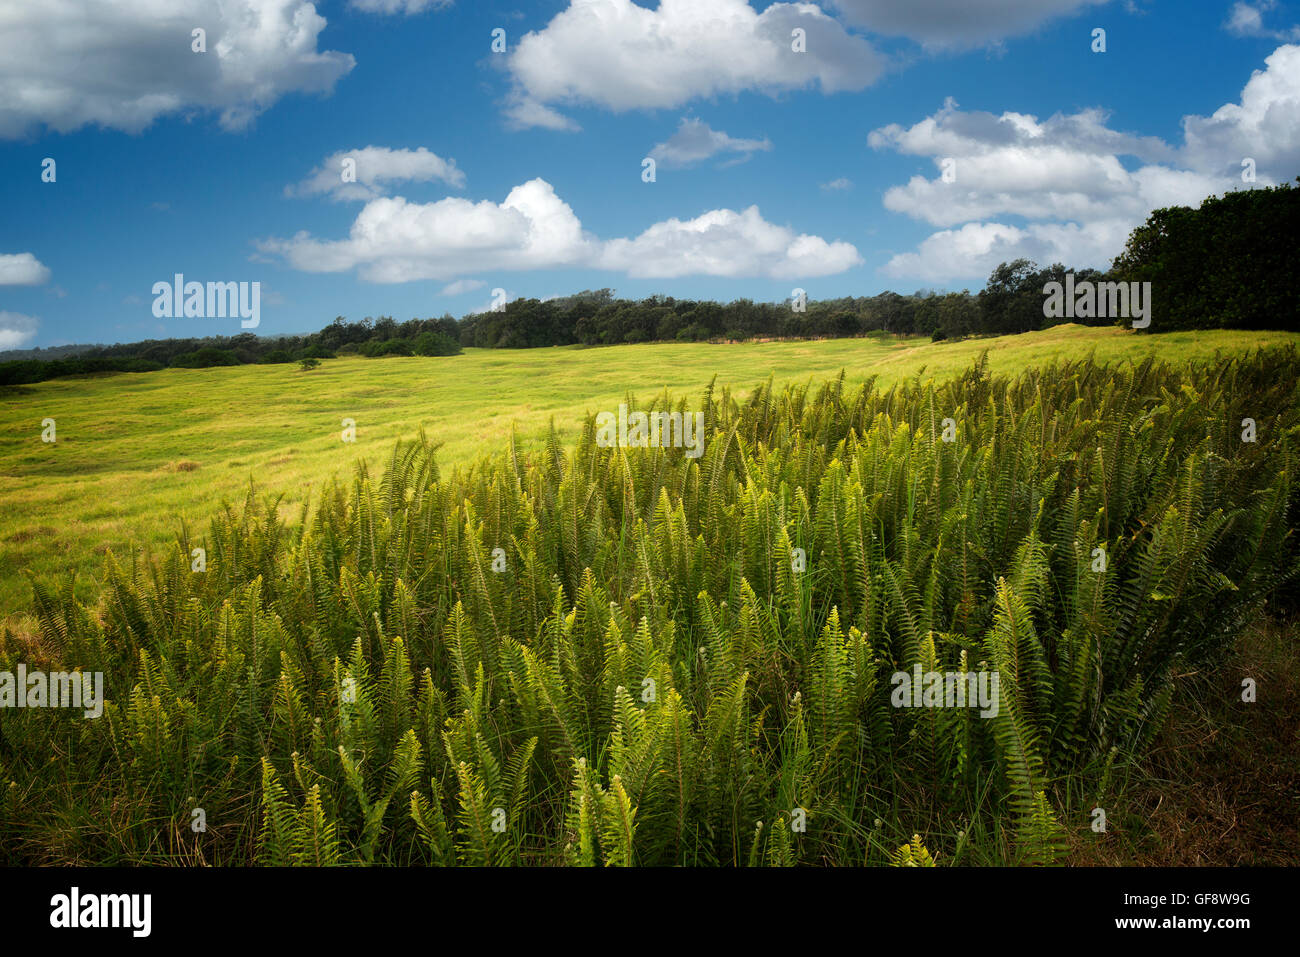 Ferns and grassland. Hawaii Volcanoes National Park, Hawaii Island - Stock Image